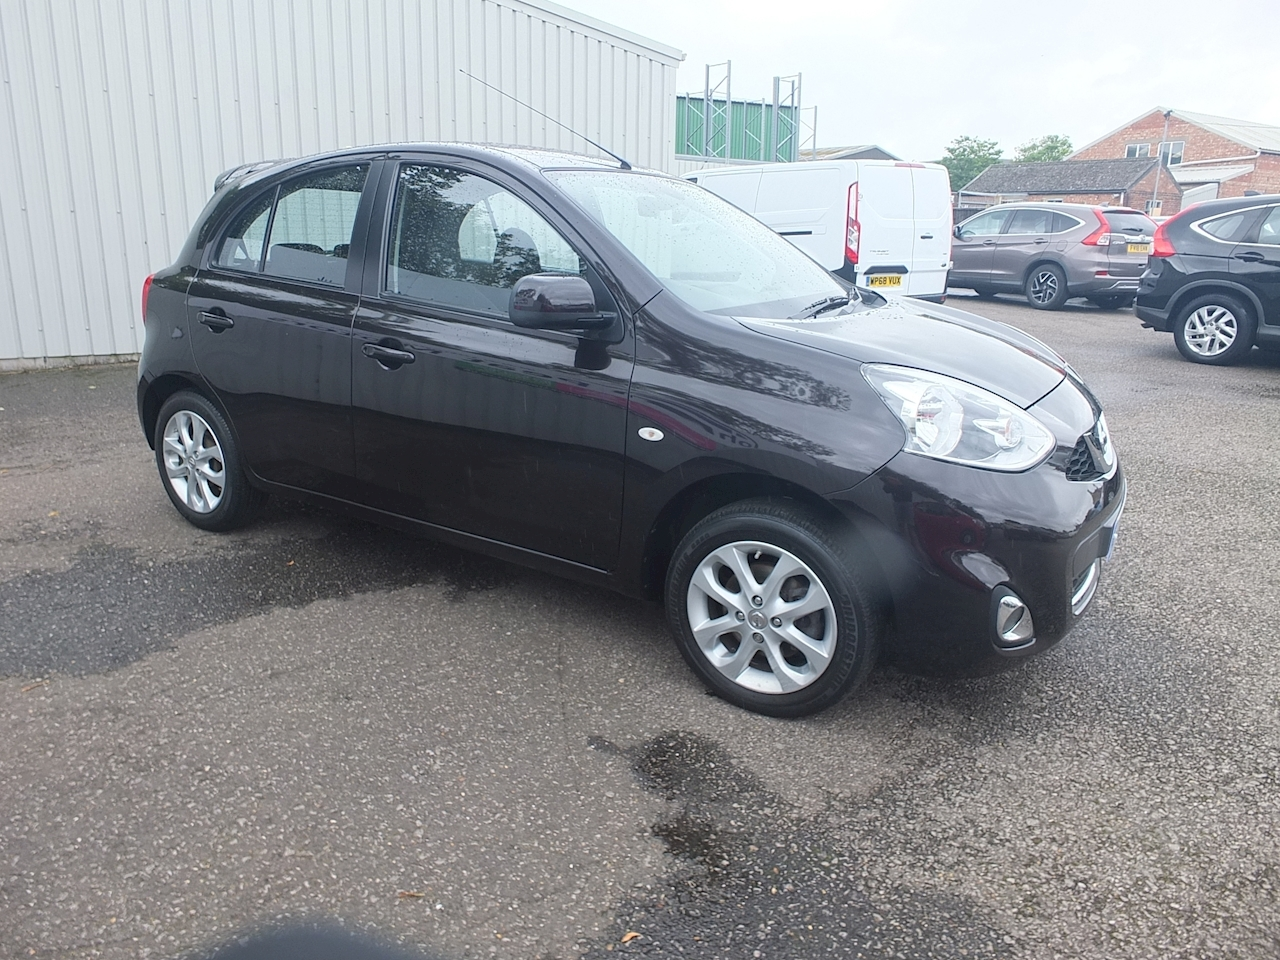 Micra Acenta Hatchback 1.2 Manual Petrol